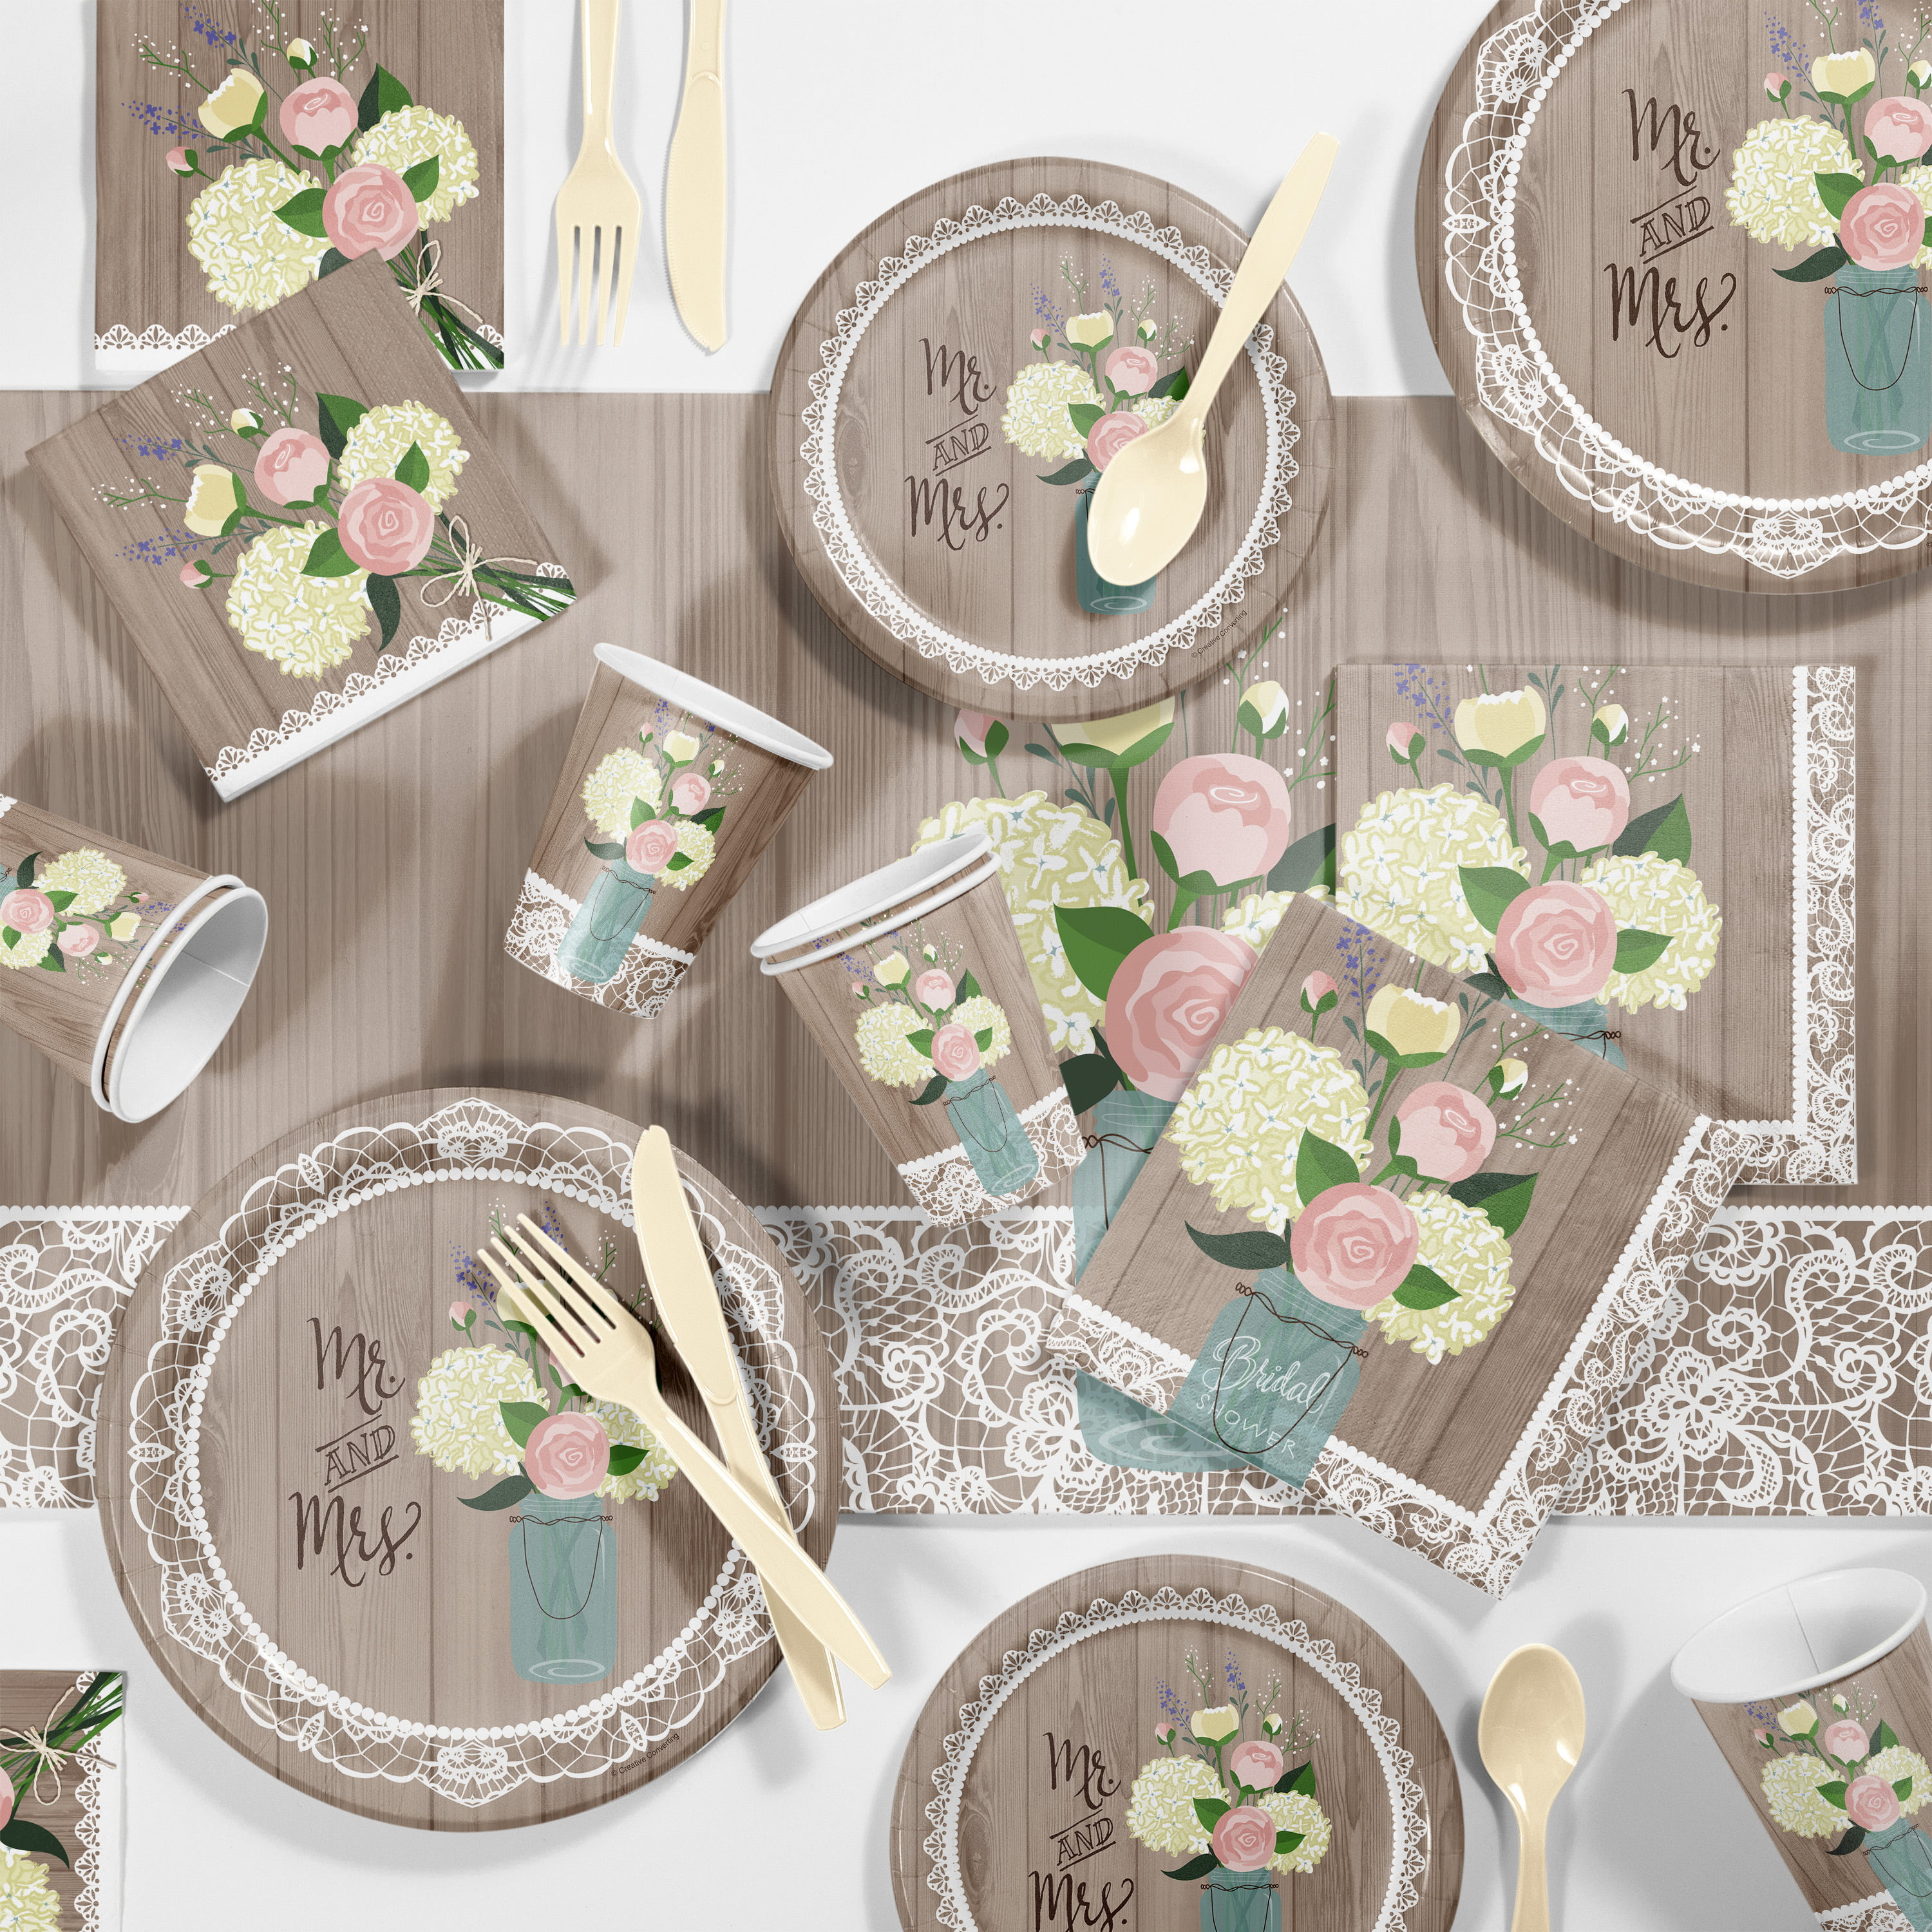 Walmart Wedding Gift Ideas: Rustic Wedding Bridal Shower Party Supplies Kit For 8